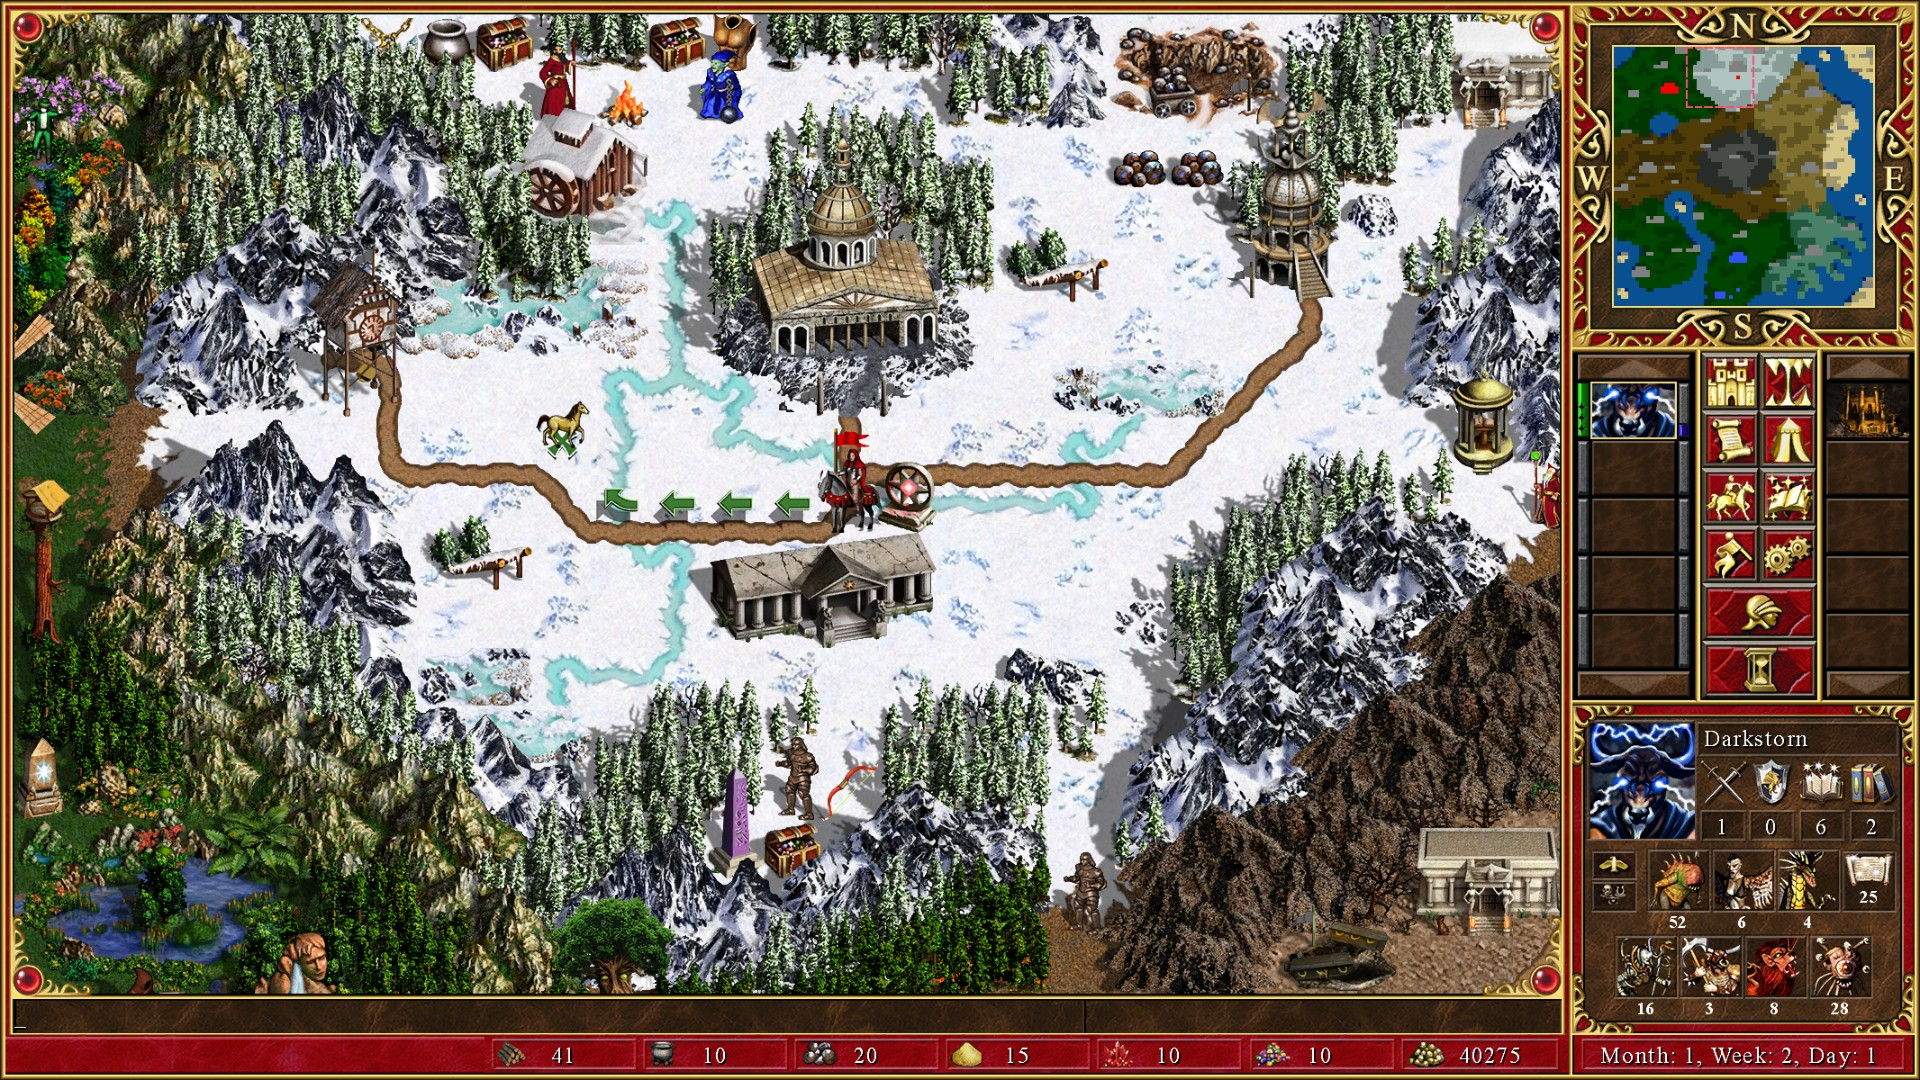 Heroes Of Might And Magic III Pics, Video Game Collection